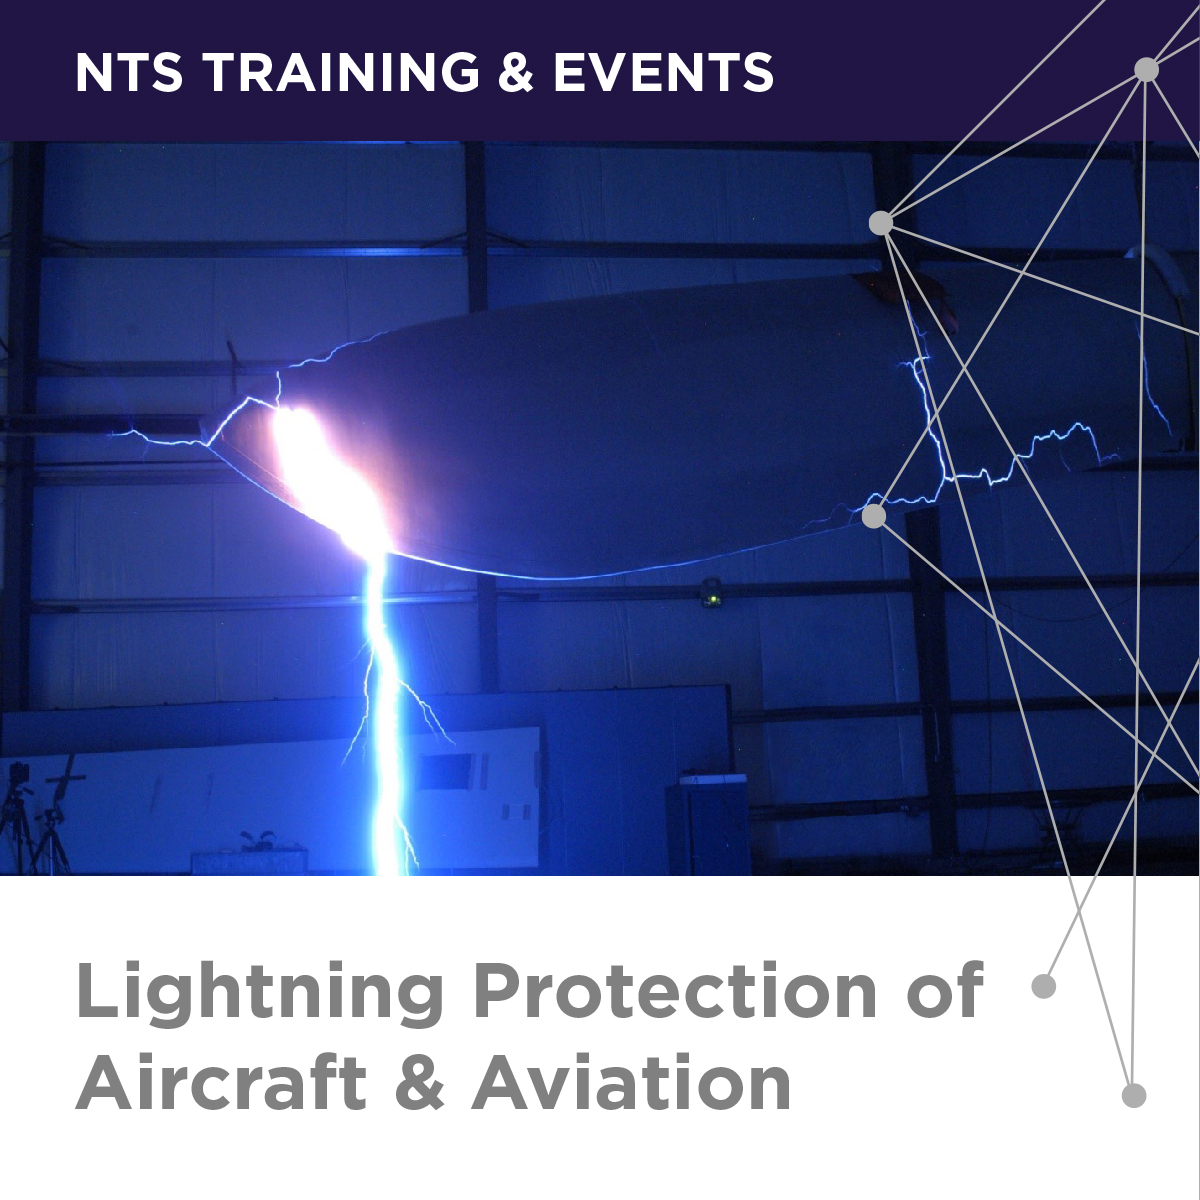 Lightning Protection Training Classes and Events